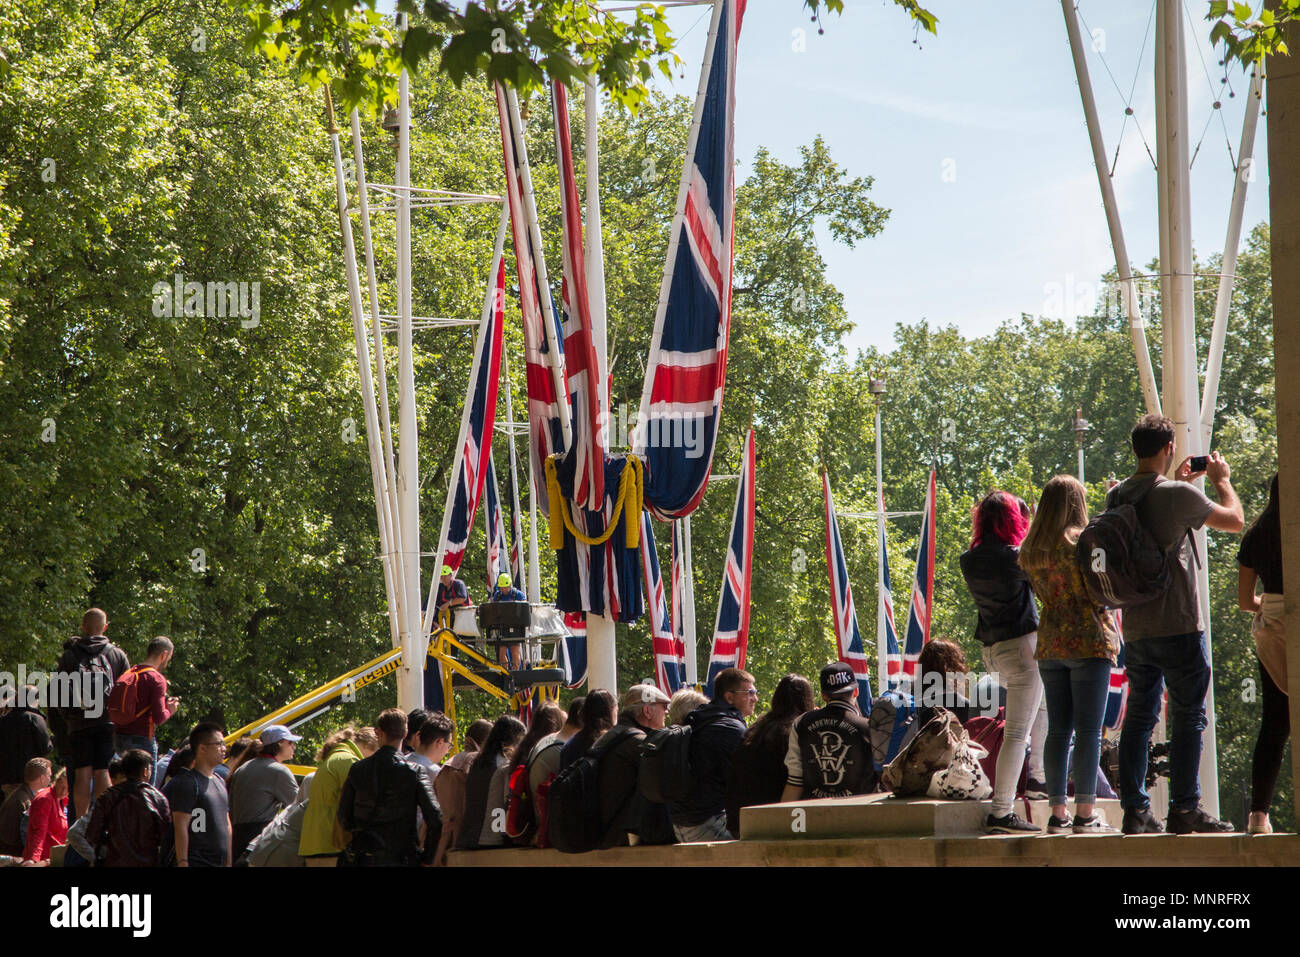 A crowd of people with phones take selfies and pictures of an event at Buckingham Palace with Union Jack banners - Stock Image